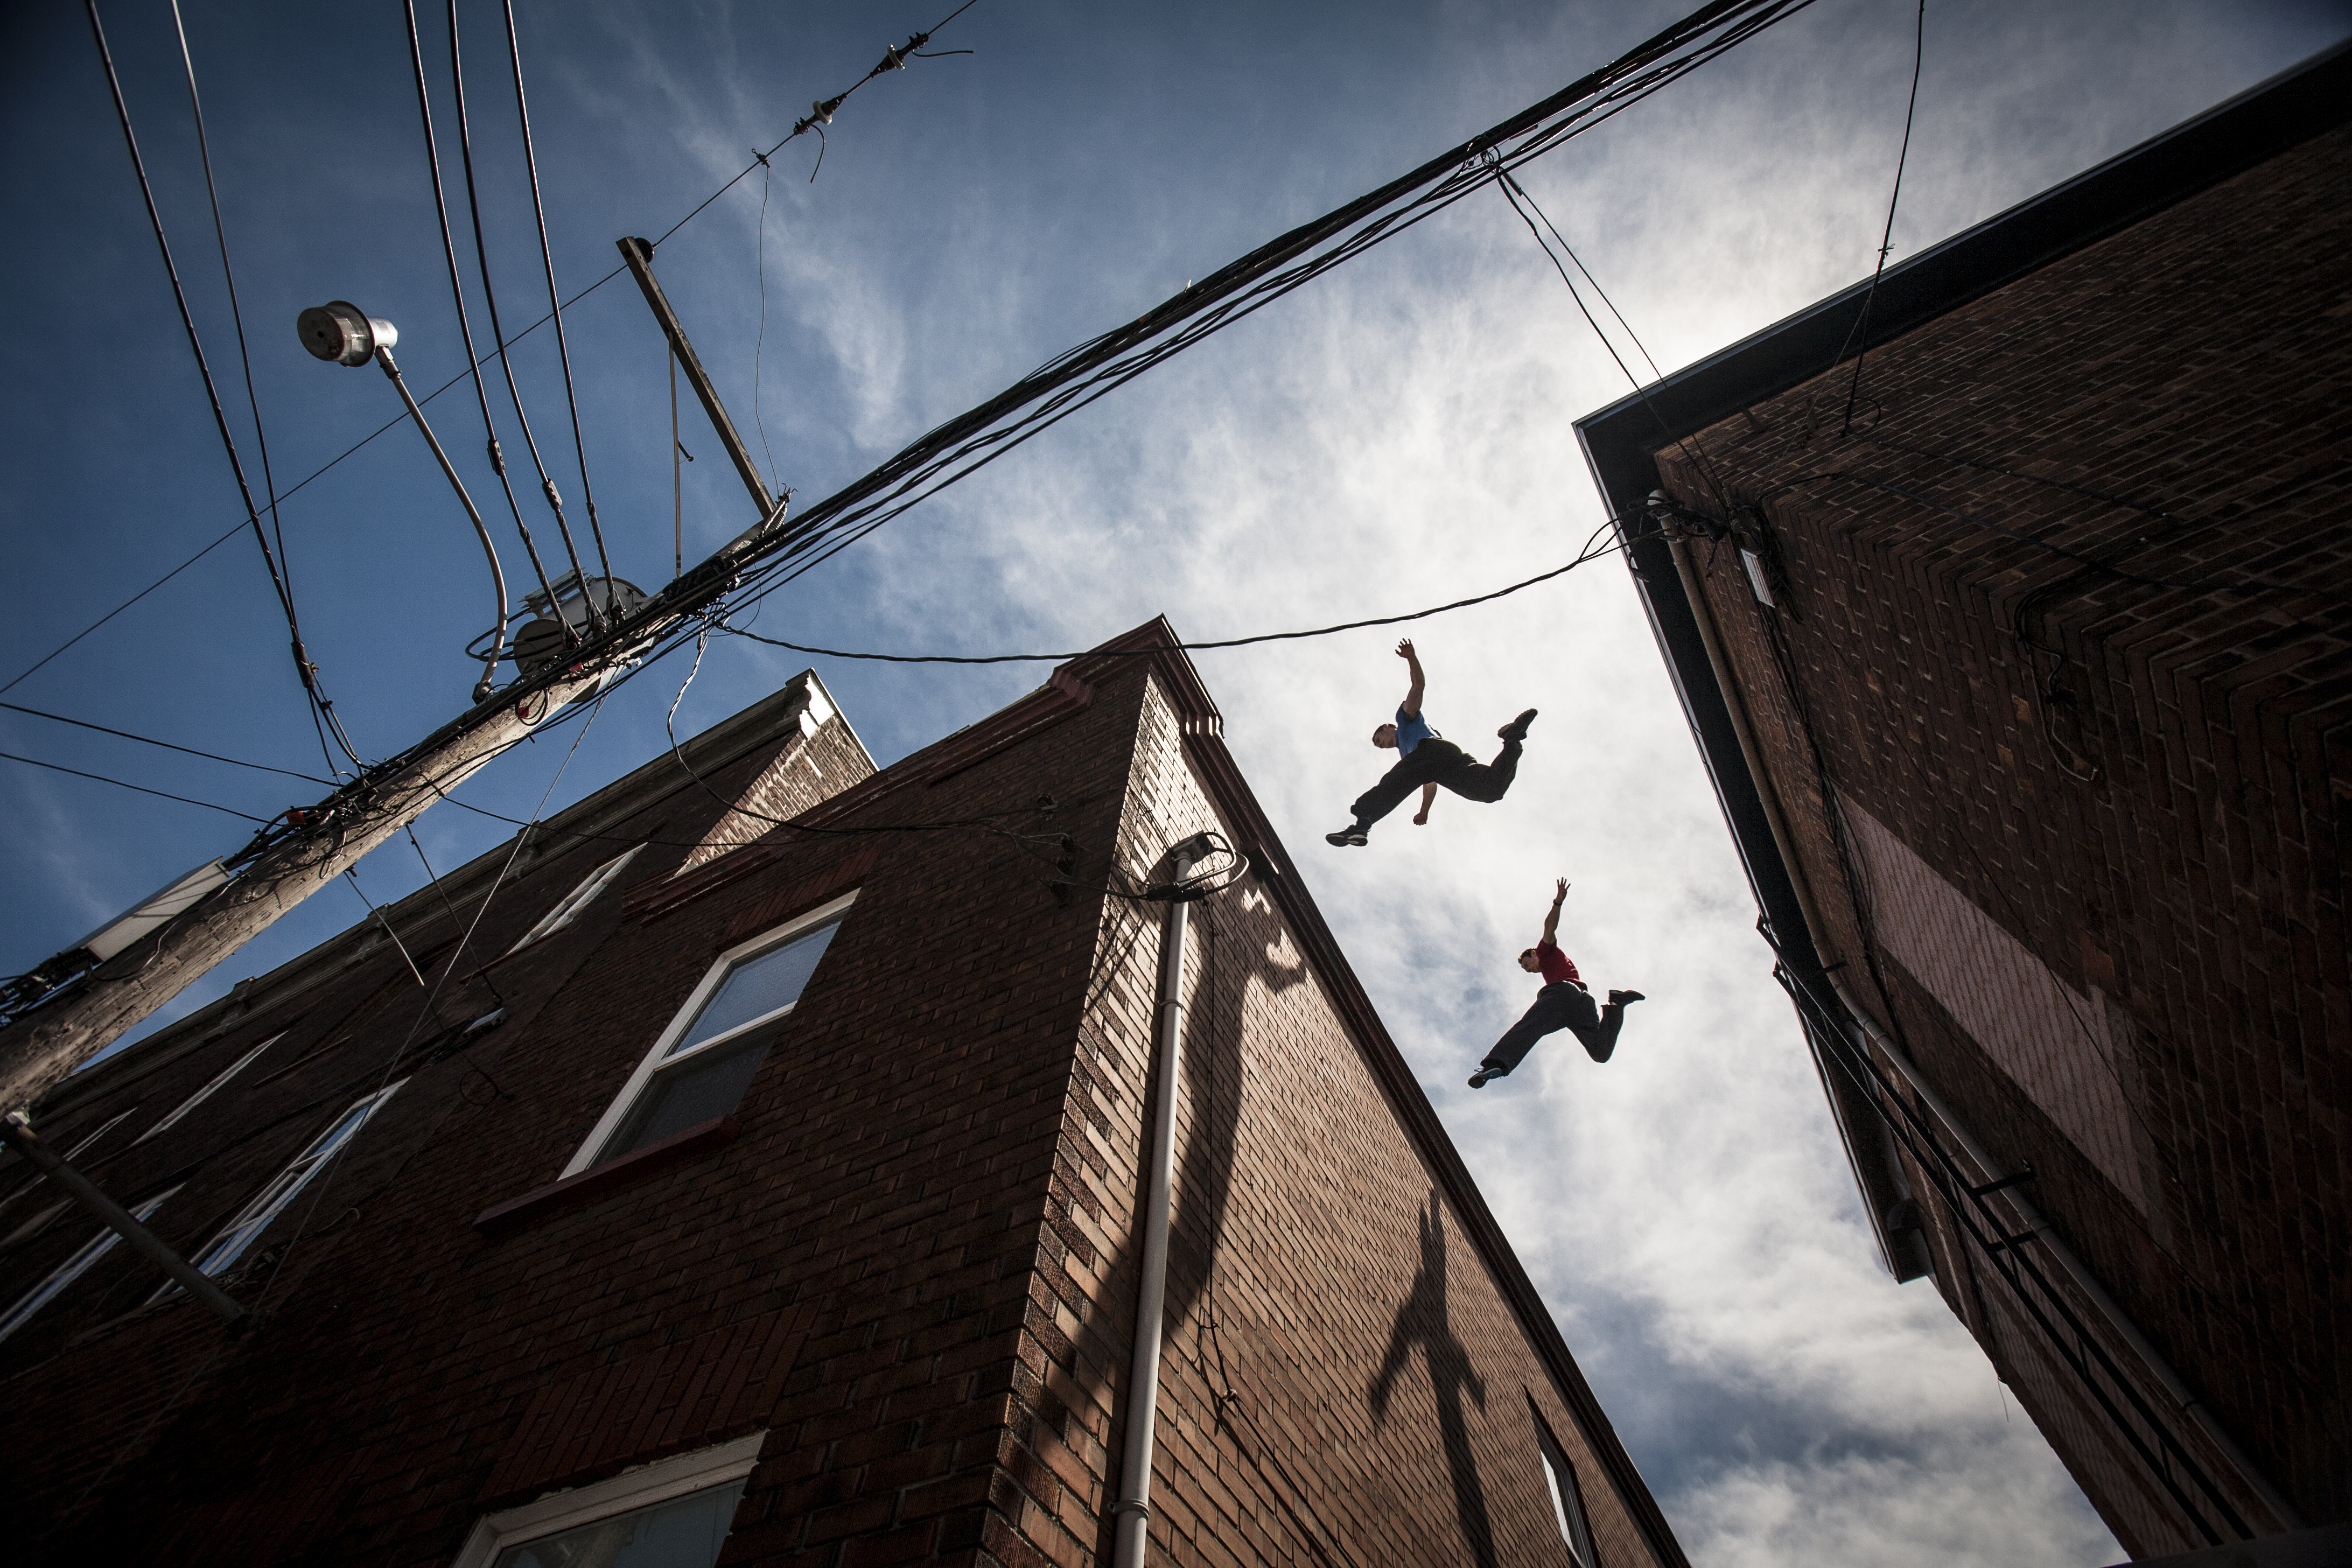 Parkour Photography Exhibition Now On Display At The